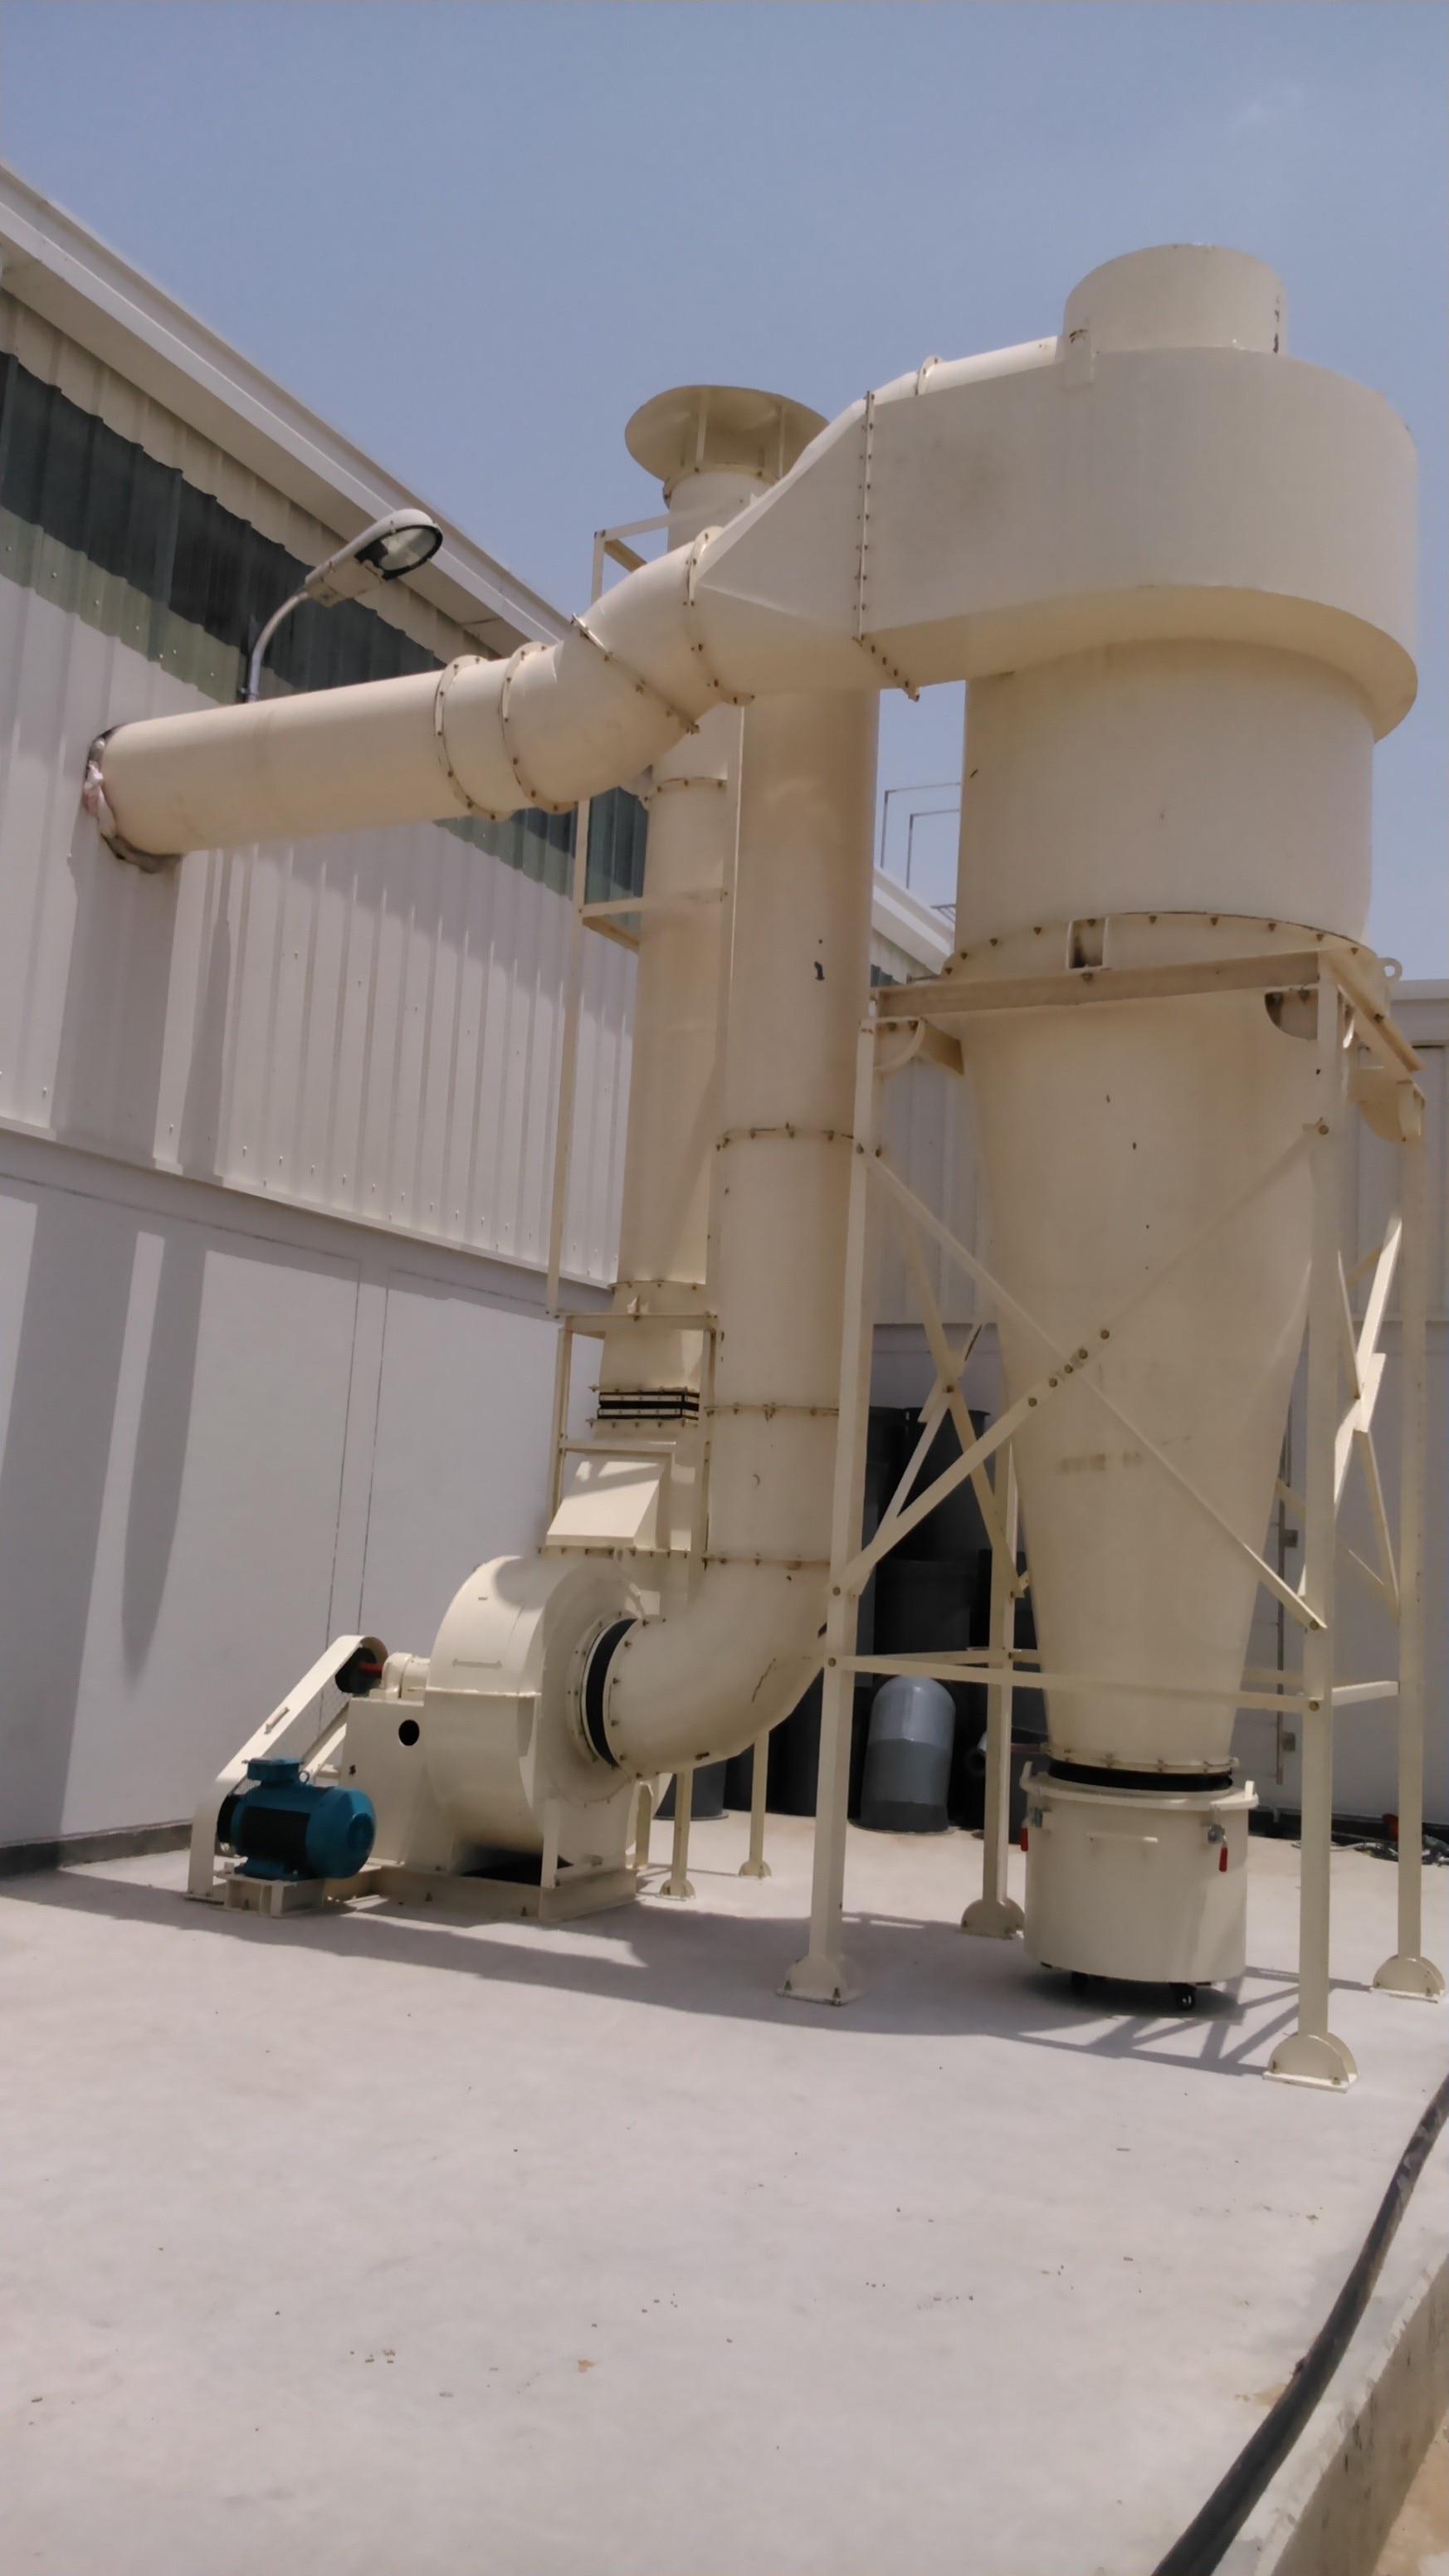 Cyclone Dust Collector HUMIAIR cyclone provides the ideal solution to the problem of collecting materials, both for exhausting dust and shavings and for conveying bark and chips. Centrifugal action causes the air and material to move the air to escape through the top.  Cyclone Dust Collector is ideal for separation application such as : ** Ideal for large particulate dust collection ** Product recovery ** For pre-filtering for a media filter ** Low energy cost ** Available for explosive and high sparking dusts ** High dust loading in wood working environments ** High temperatures *** Highly abrasive wood shop dust